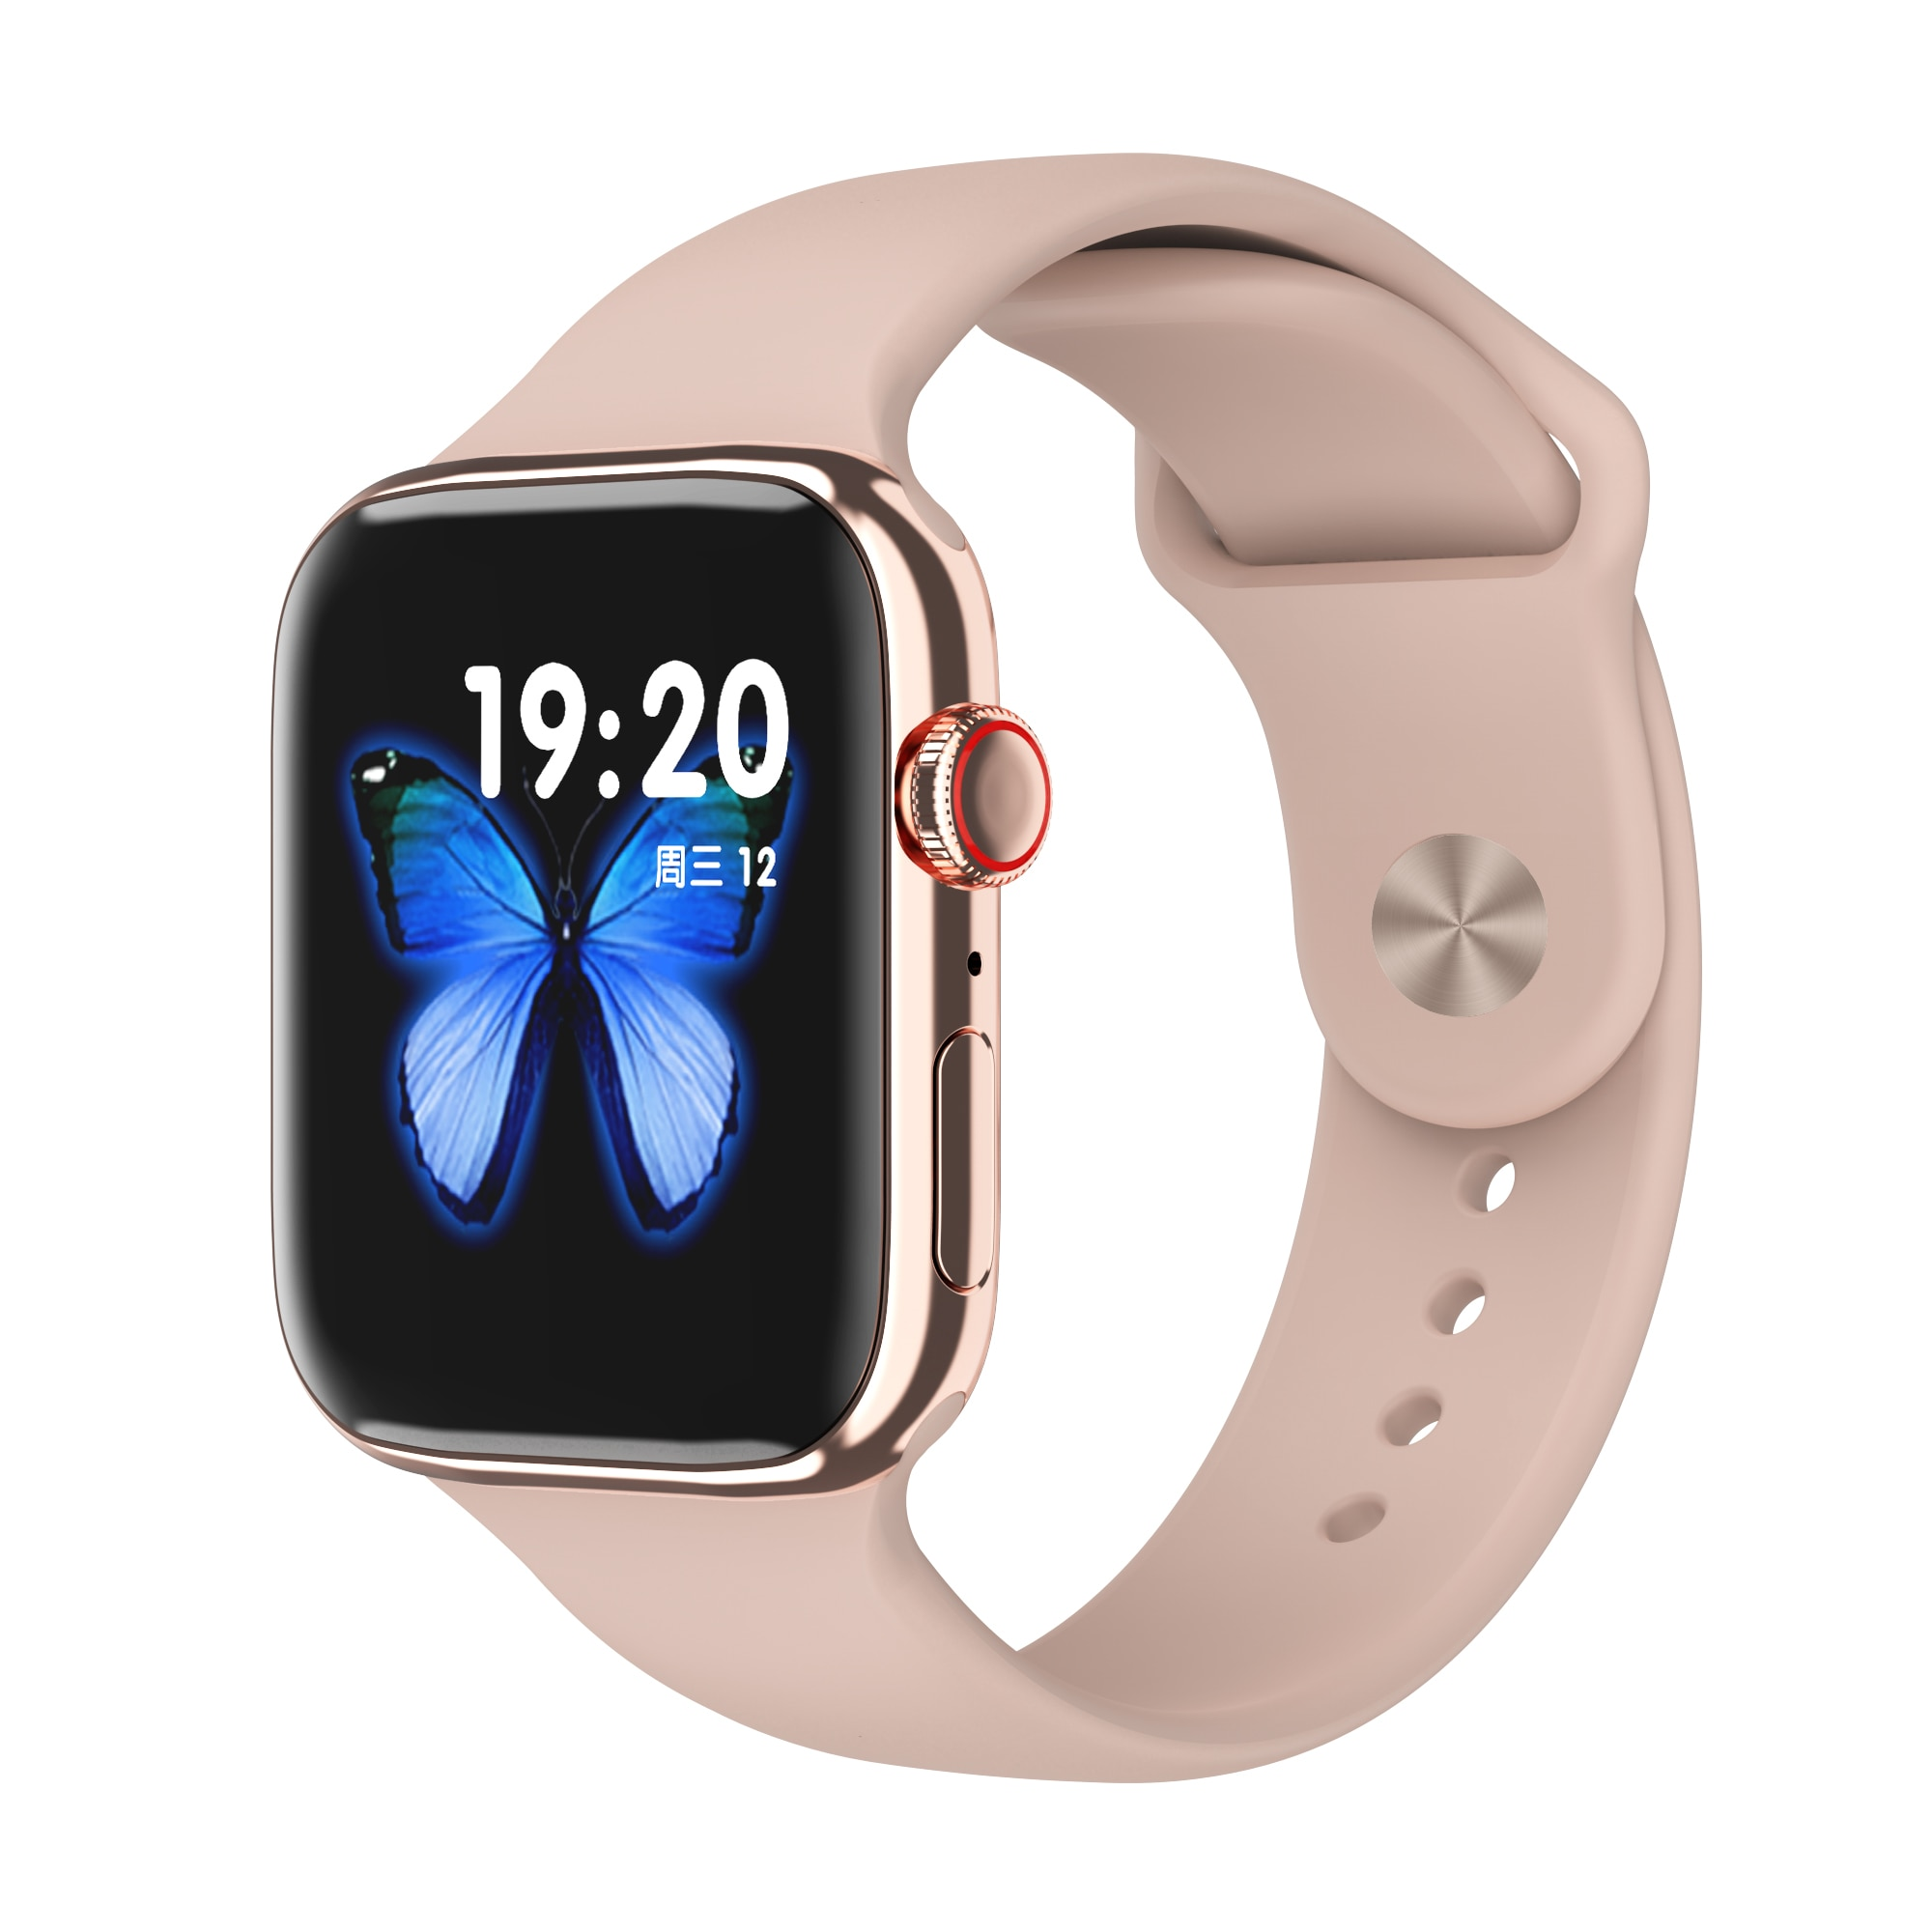 F18 men and women smart watches, fitness tracking bracelets, heart rate monitors, touch and keys, waterproof IP67 3